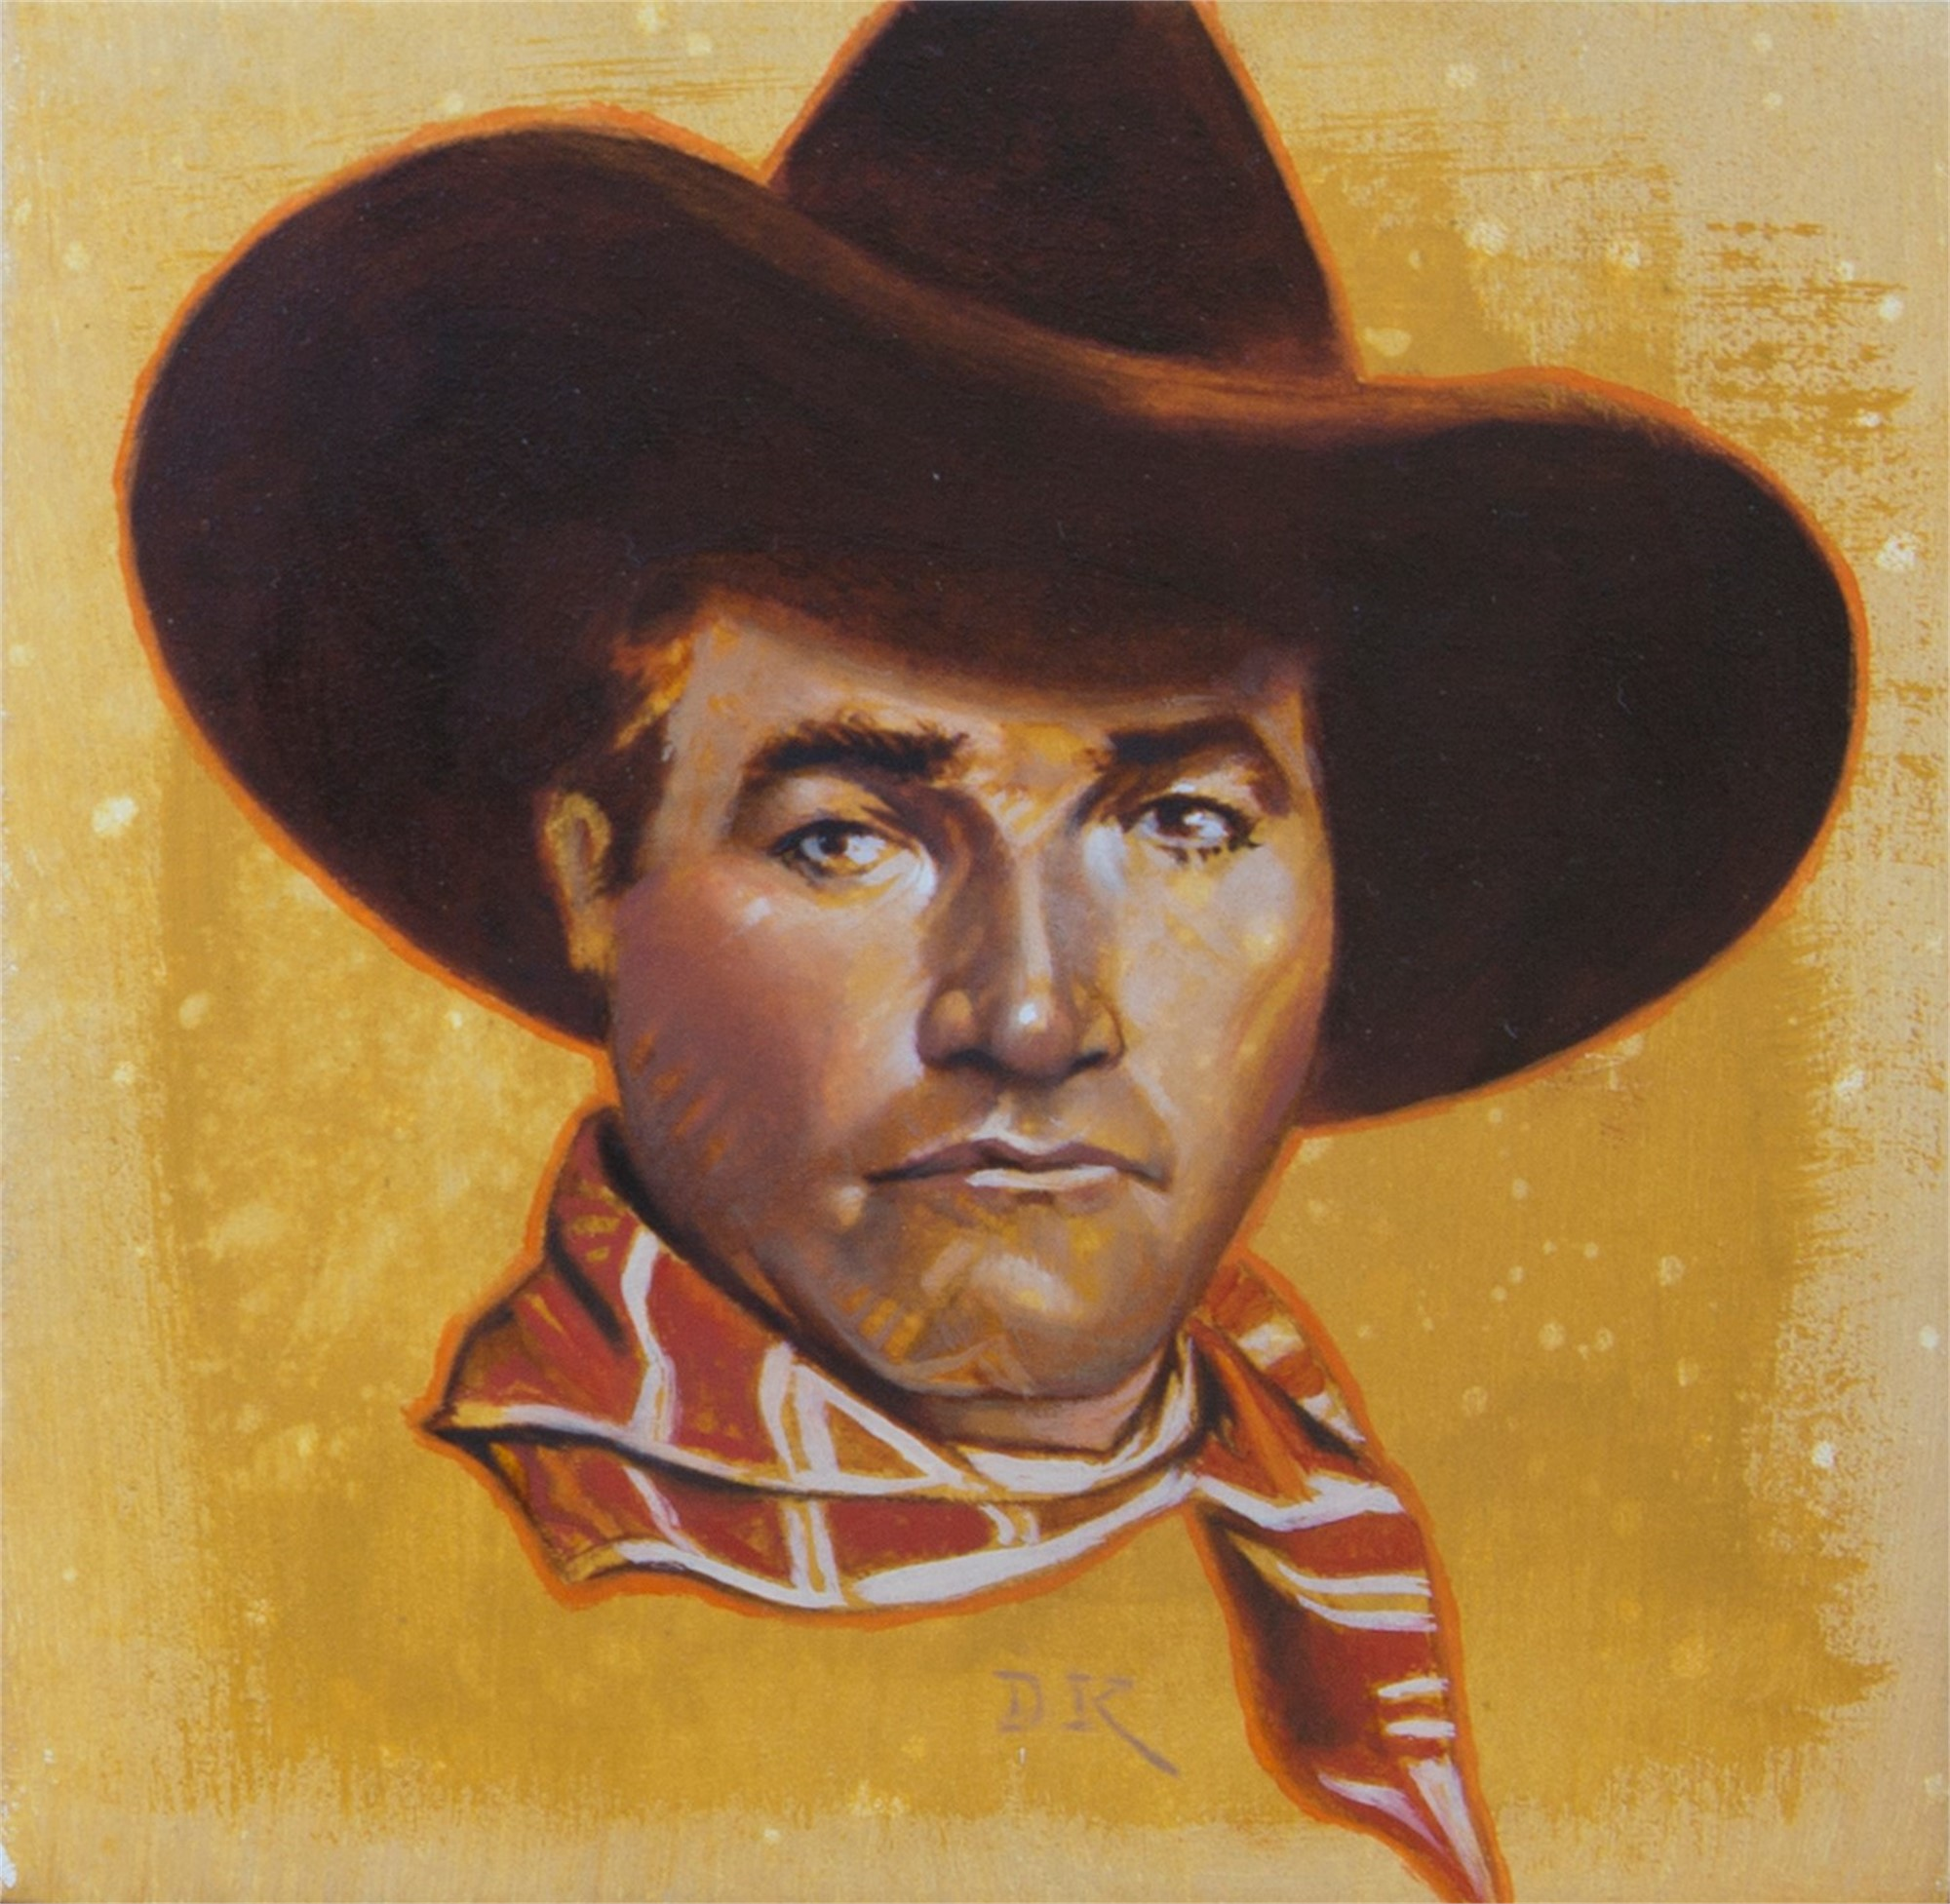 Mix, Tom Mix by David Kammerzell